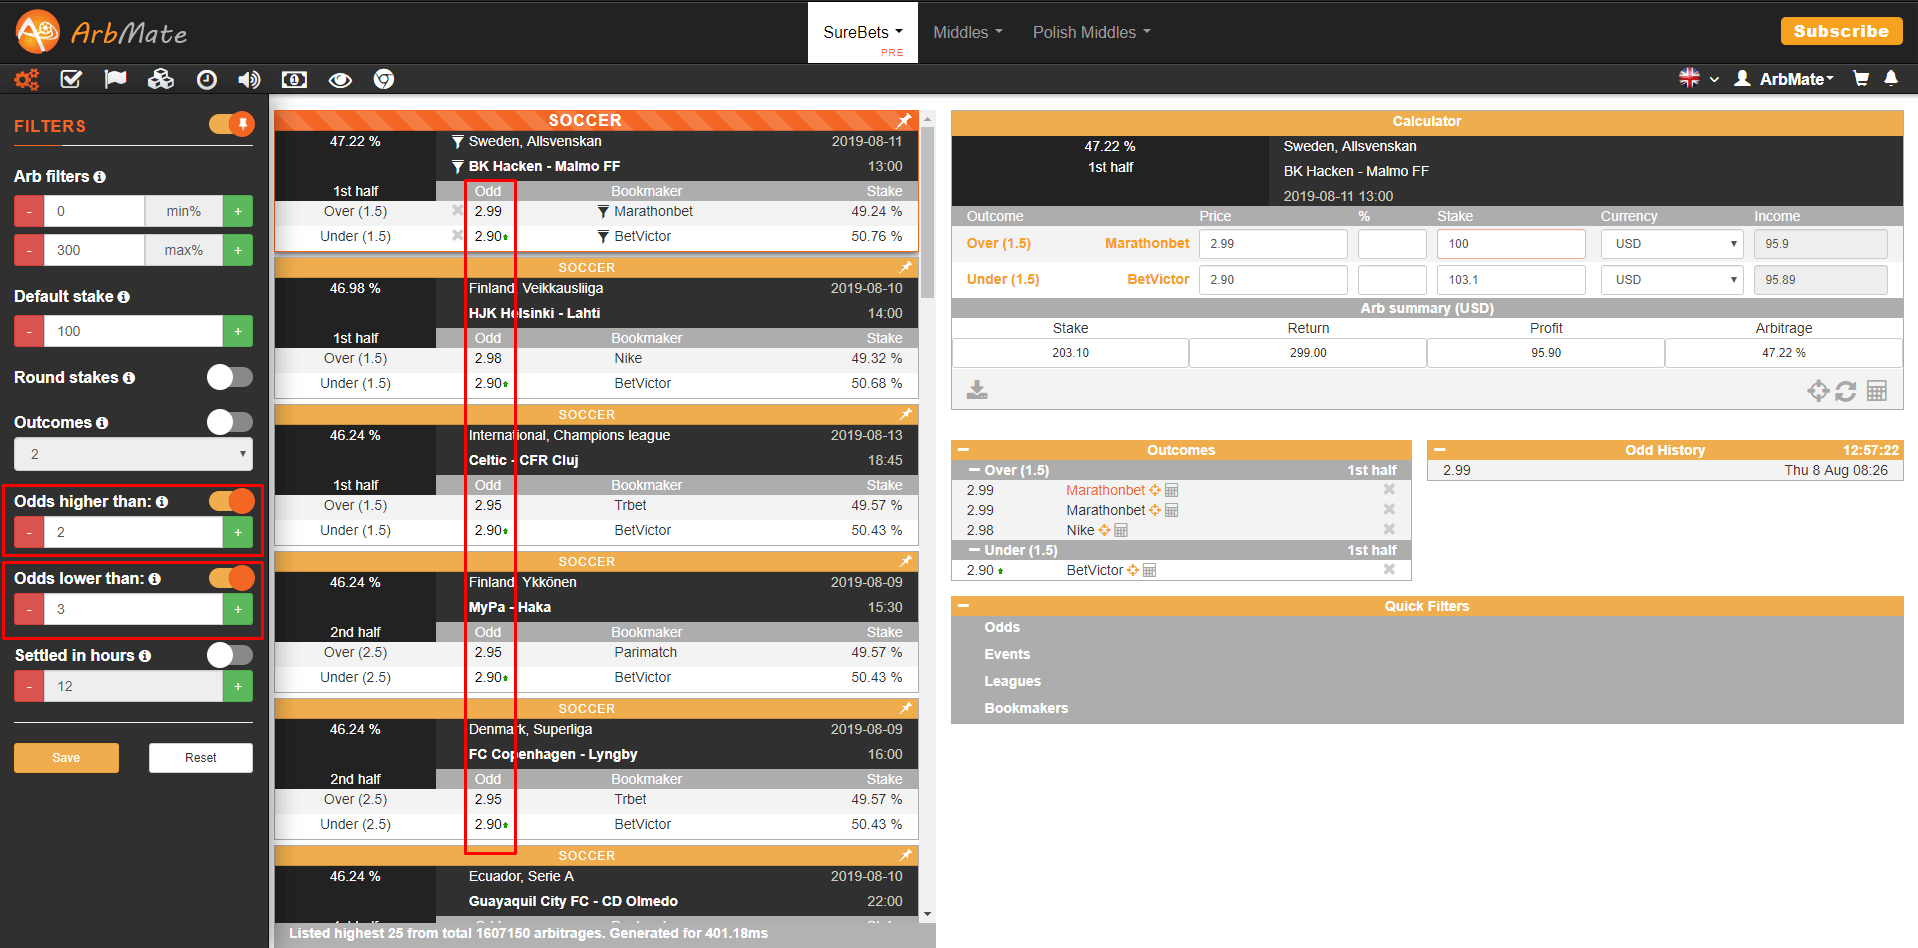 Filter odds by value